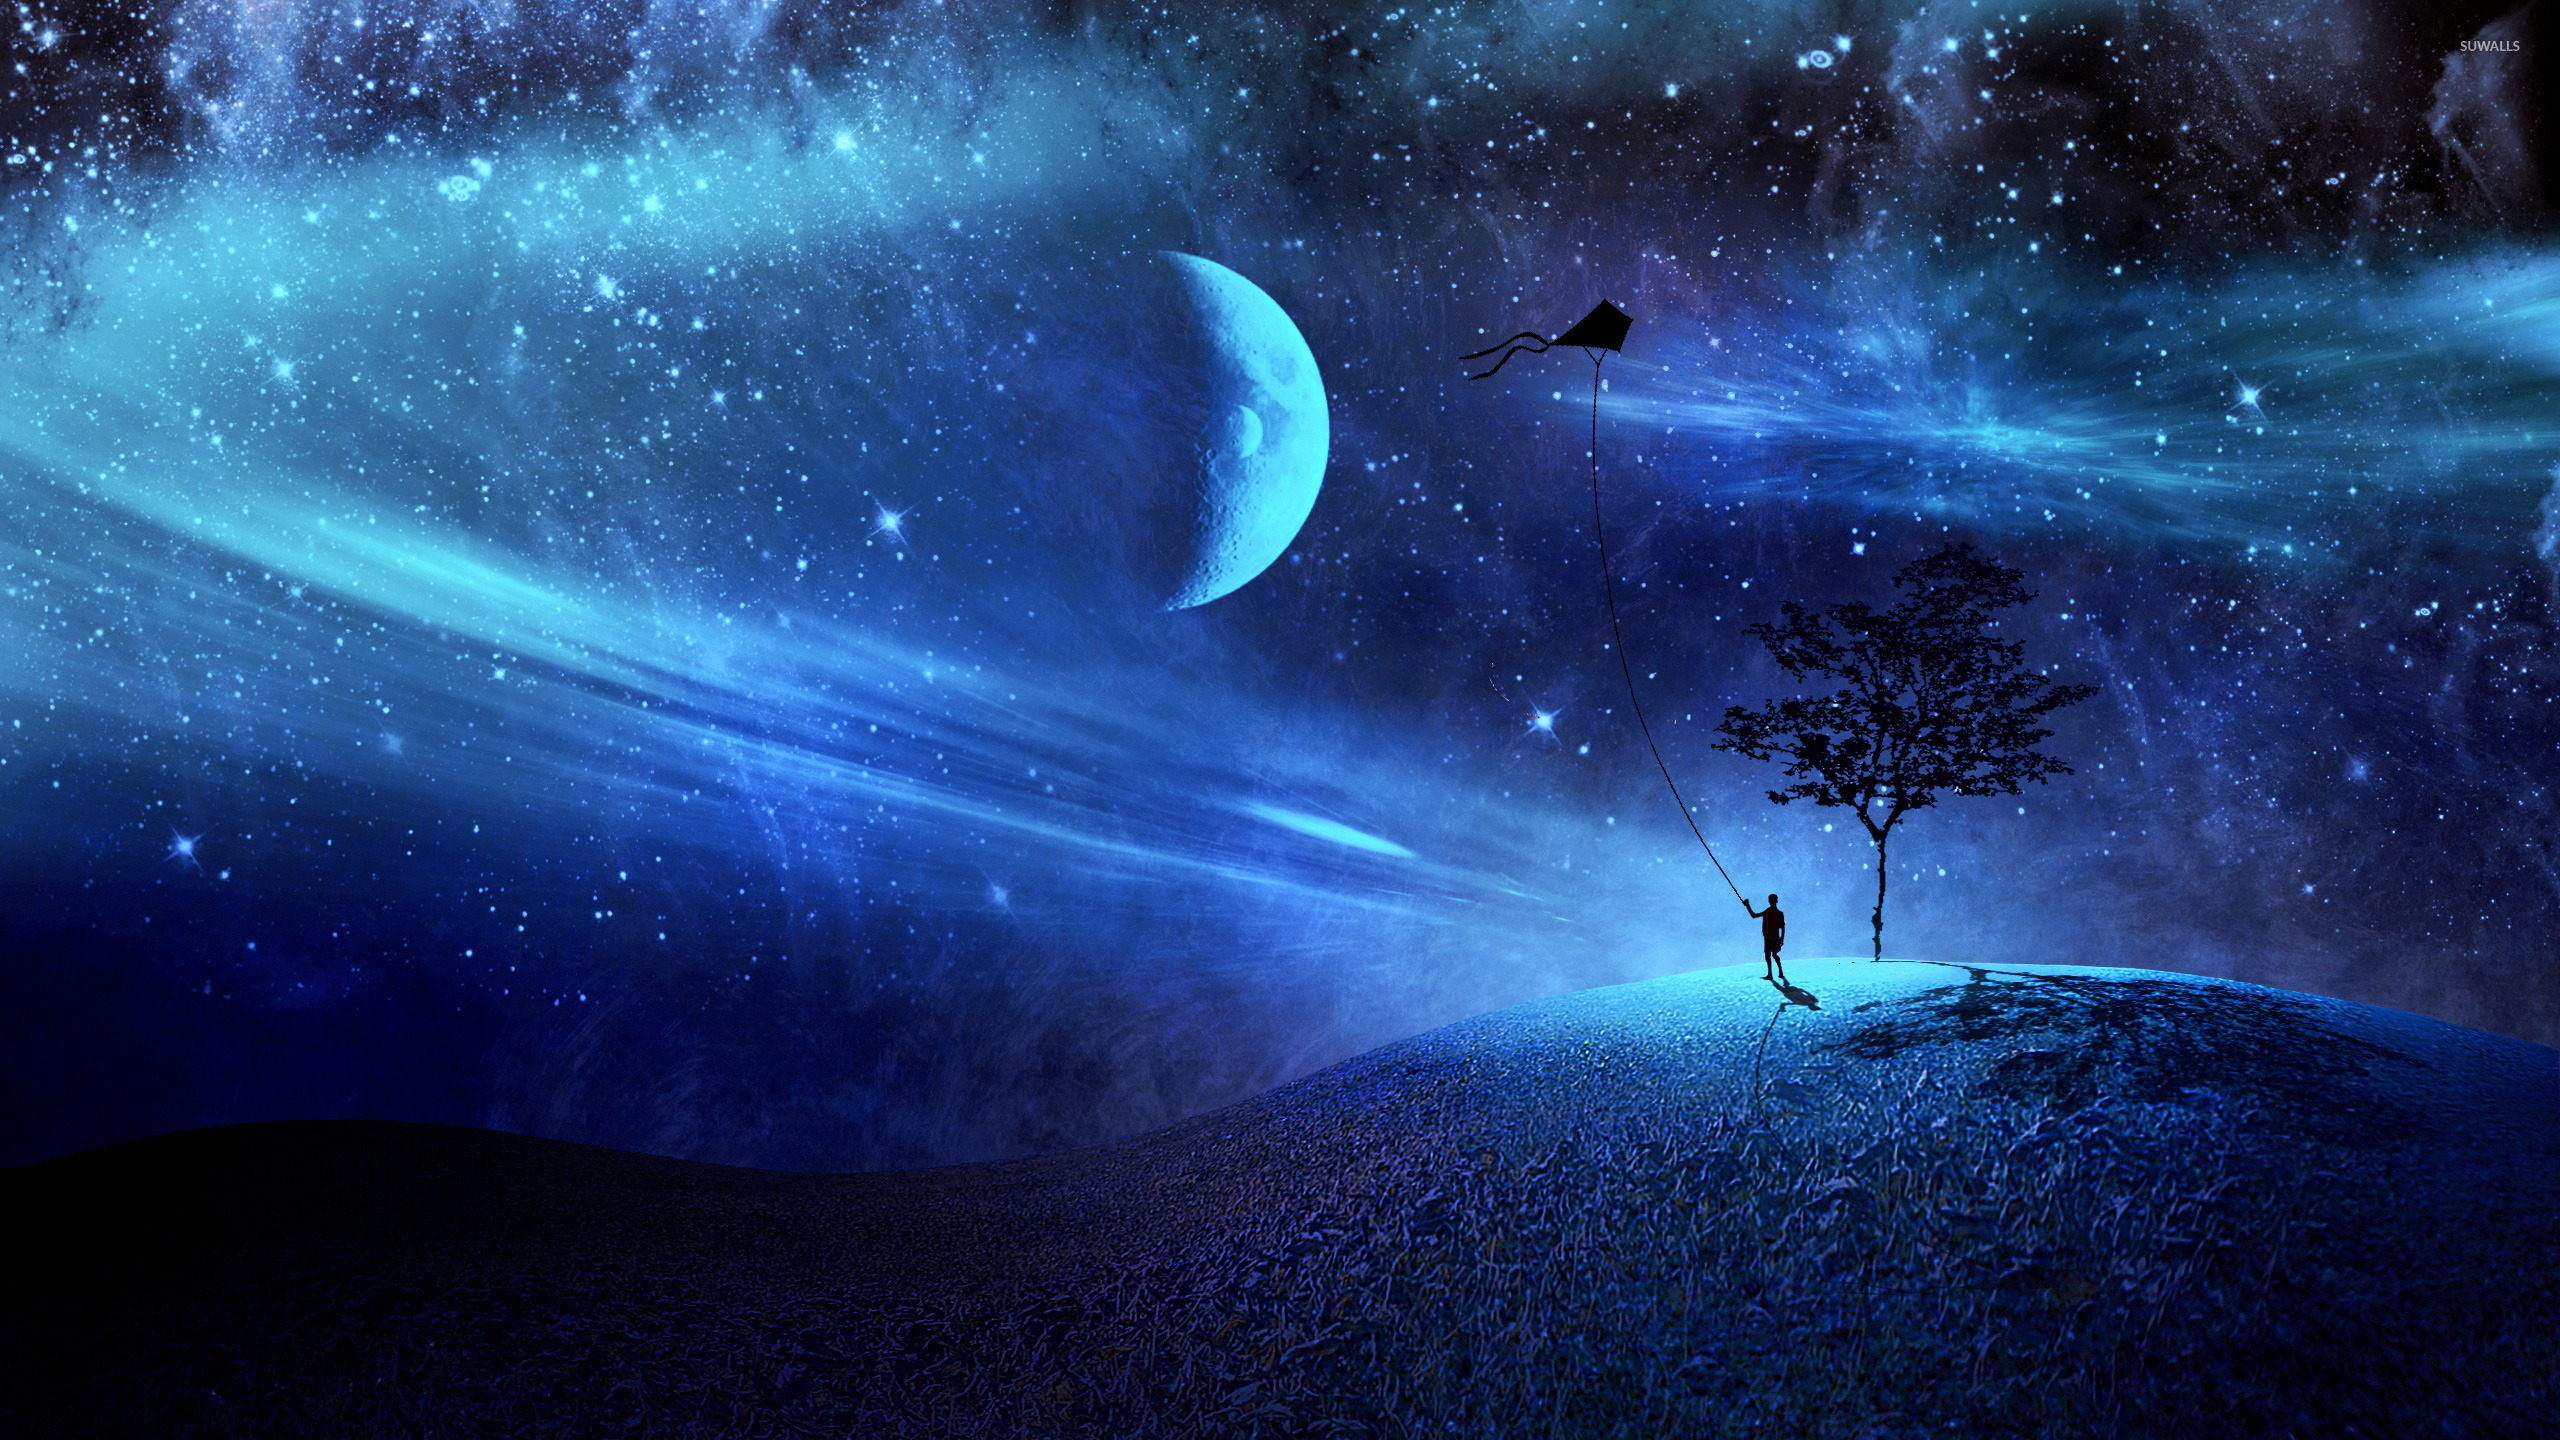 Good Wallpaper Night Blue - boy-with-his-kite-in-a-blue-night-25631-2560x1440  Pictures.jpg